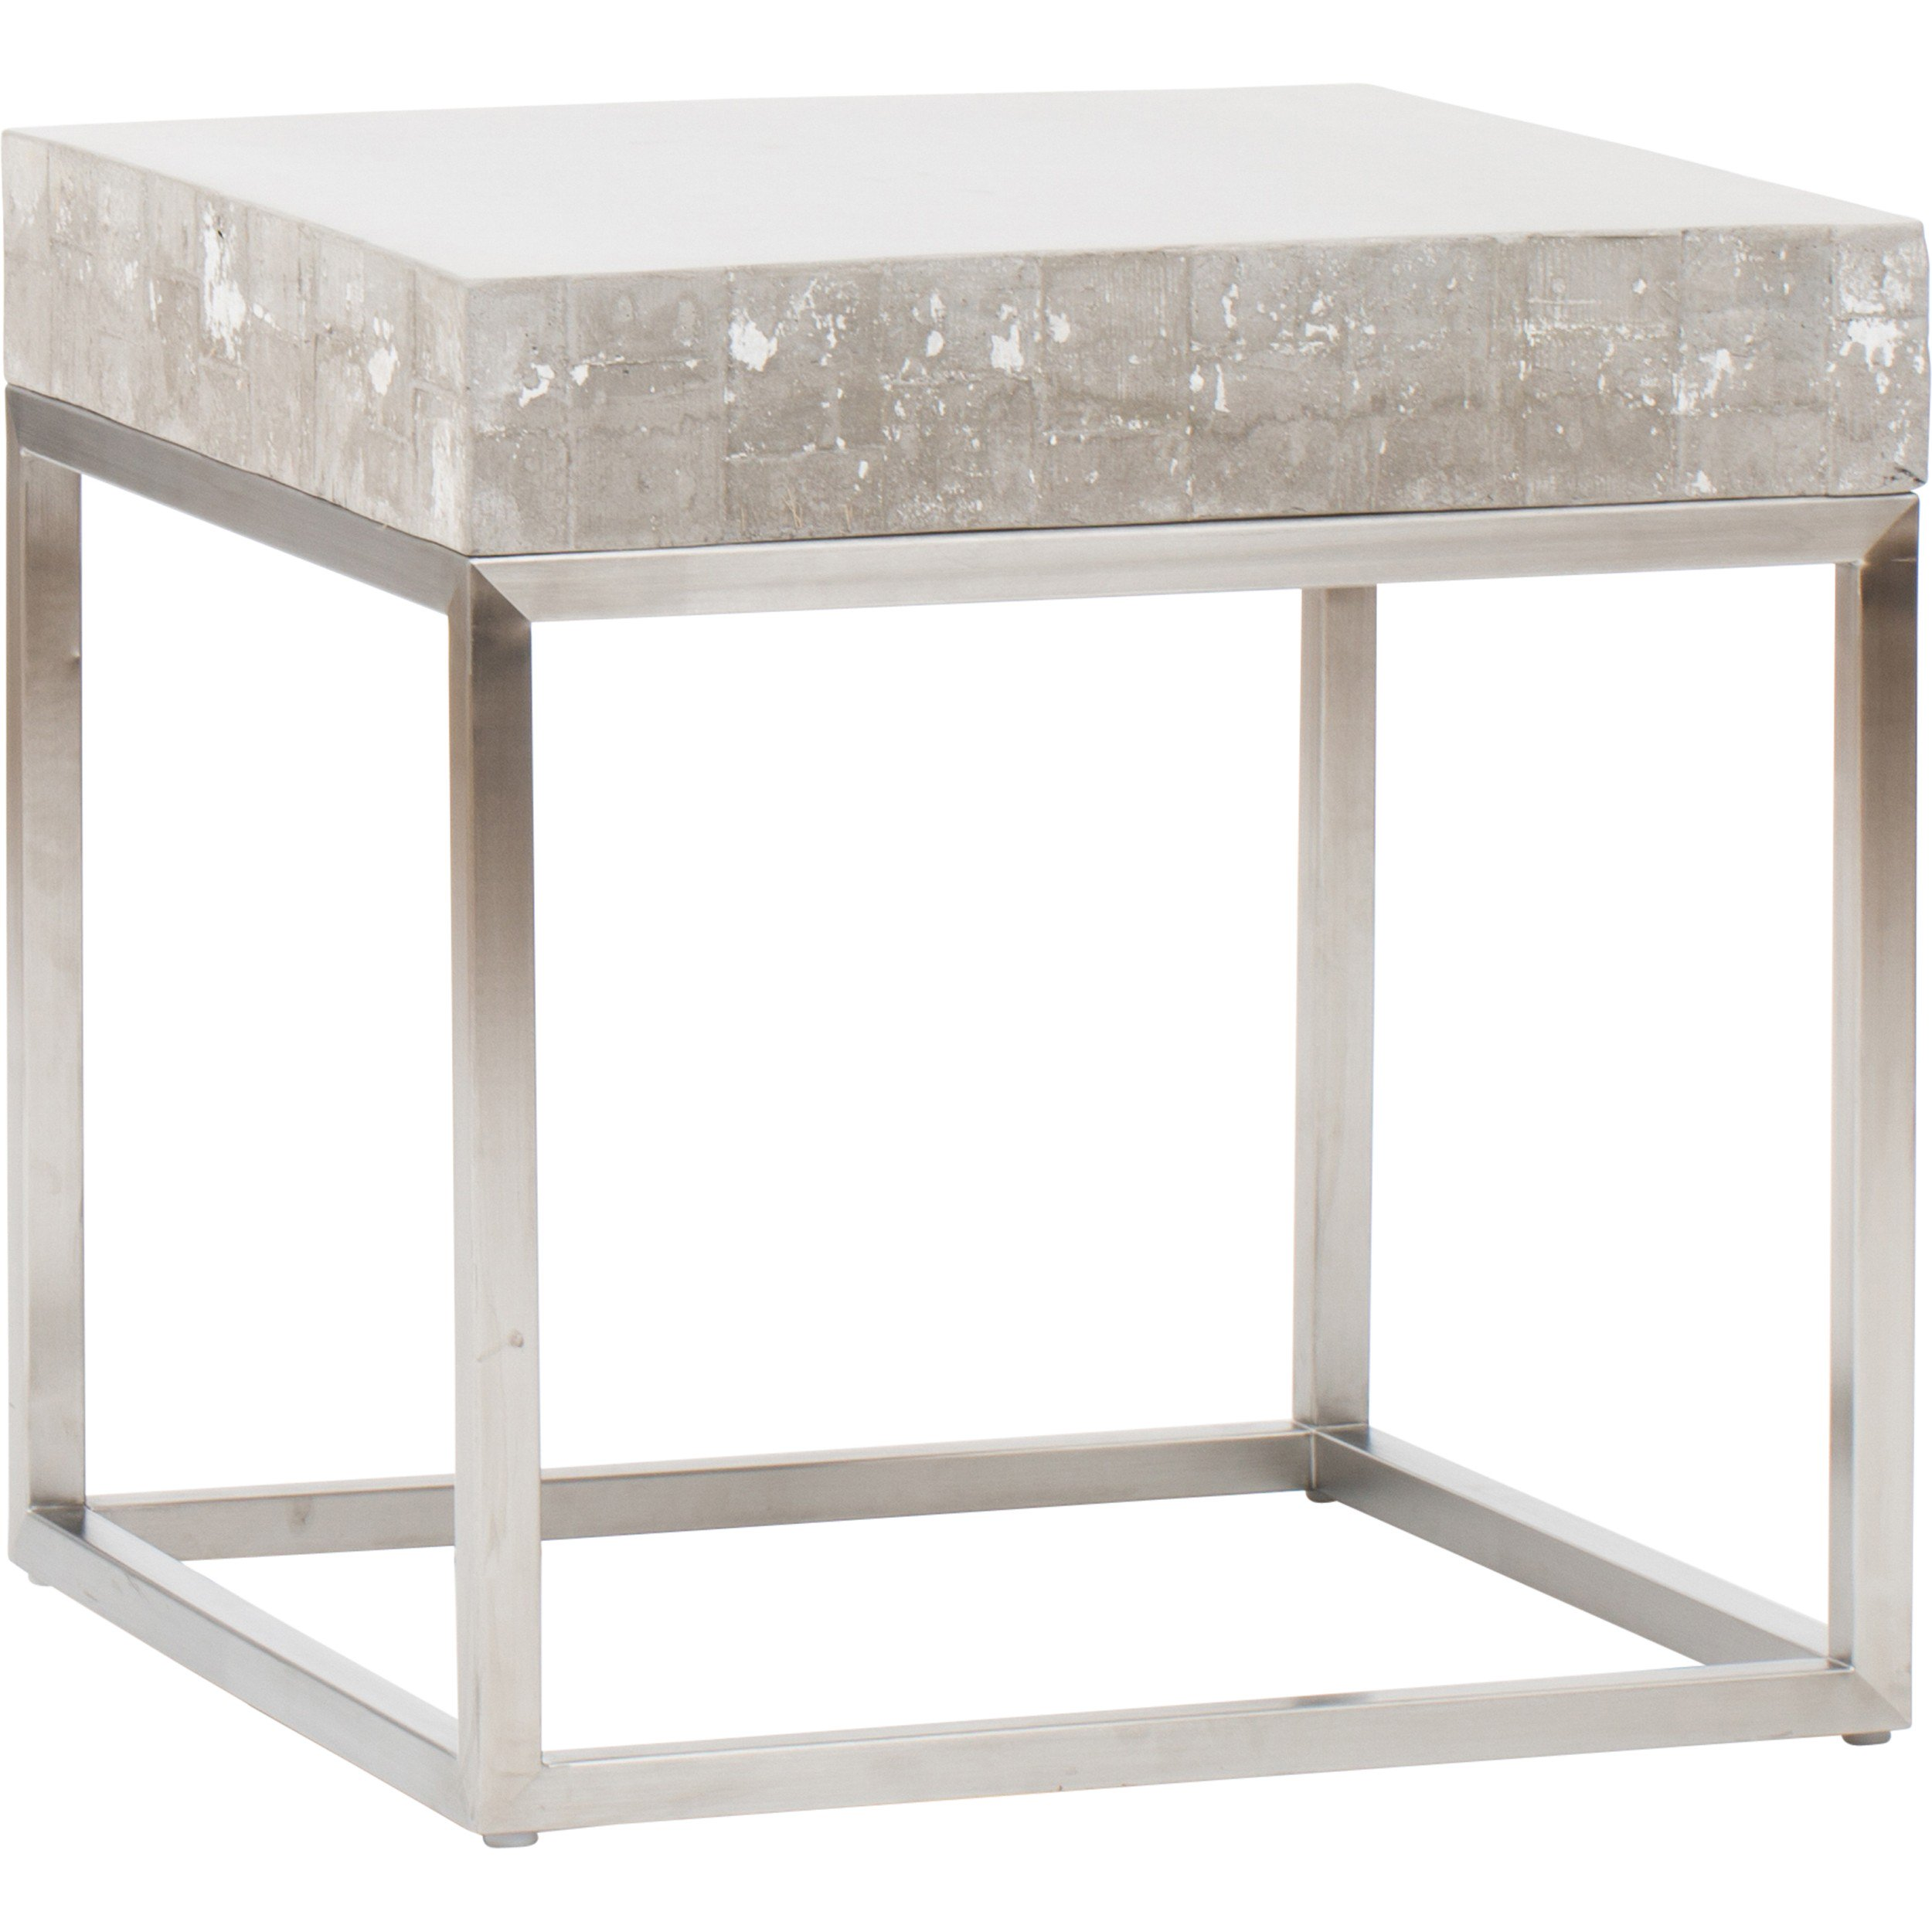 concrete and chrome end table accent tables outdoor furniture pork pie drum throne ikea dining room chairs geometric rug adjustable height coffee black pedestal mats amish made